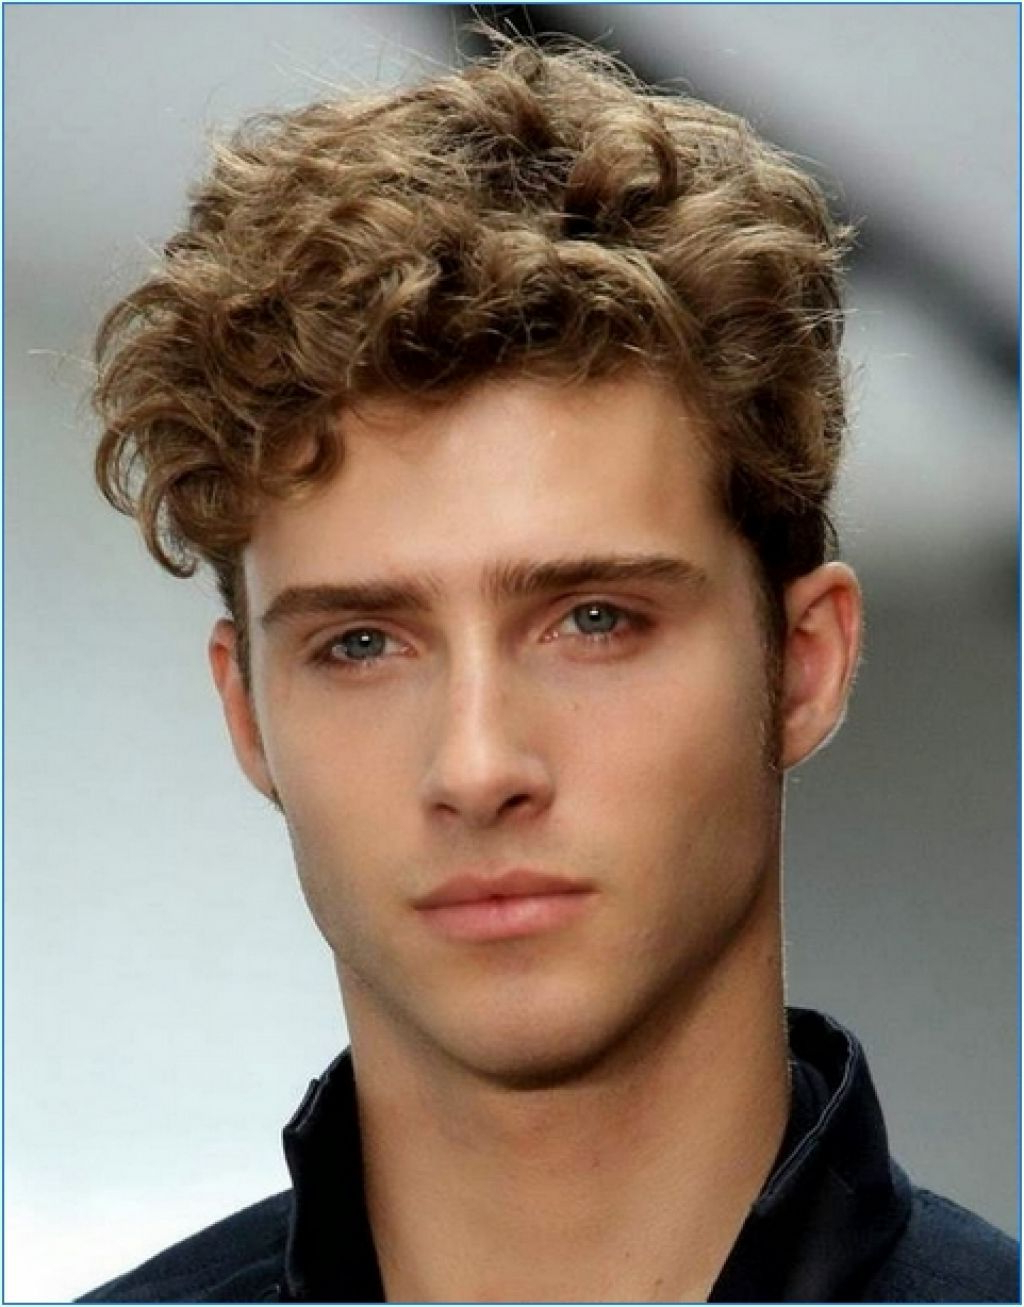 Dirty Blonde Hair Dye Guys – Best Hair Style 2017 | Kellen In 2018 Pertaining To Dark Blonde Short Curly Hairstyles (Gallery 5 of 20)